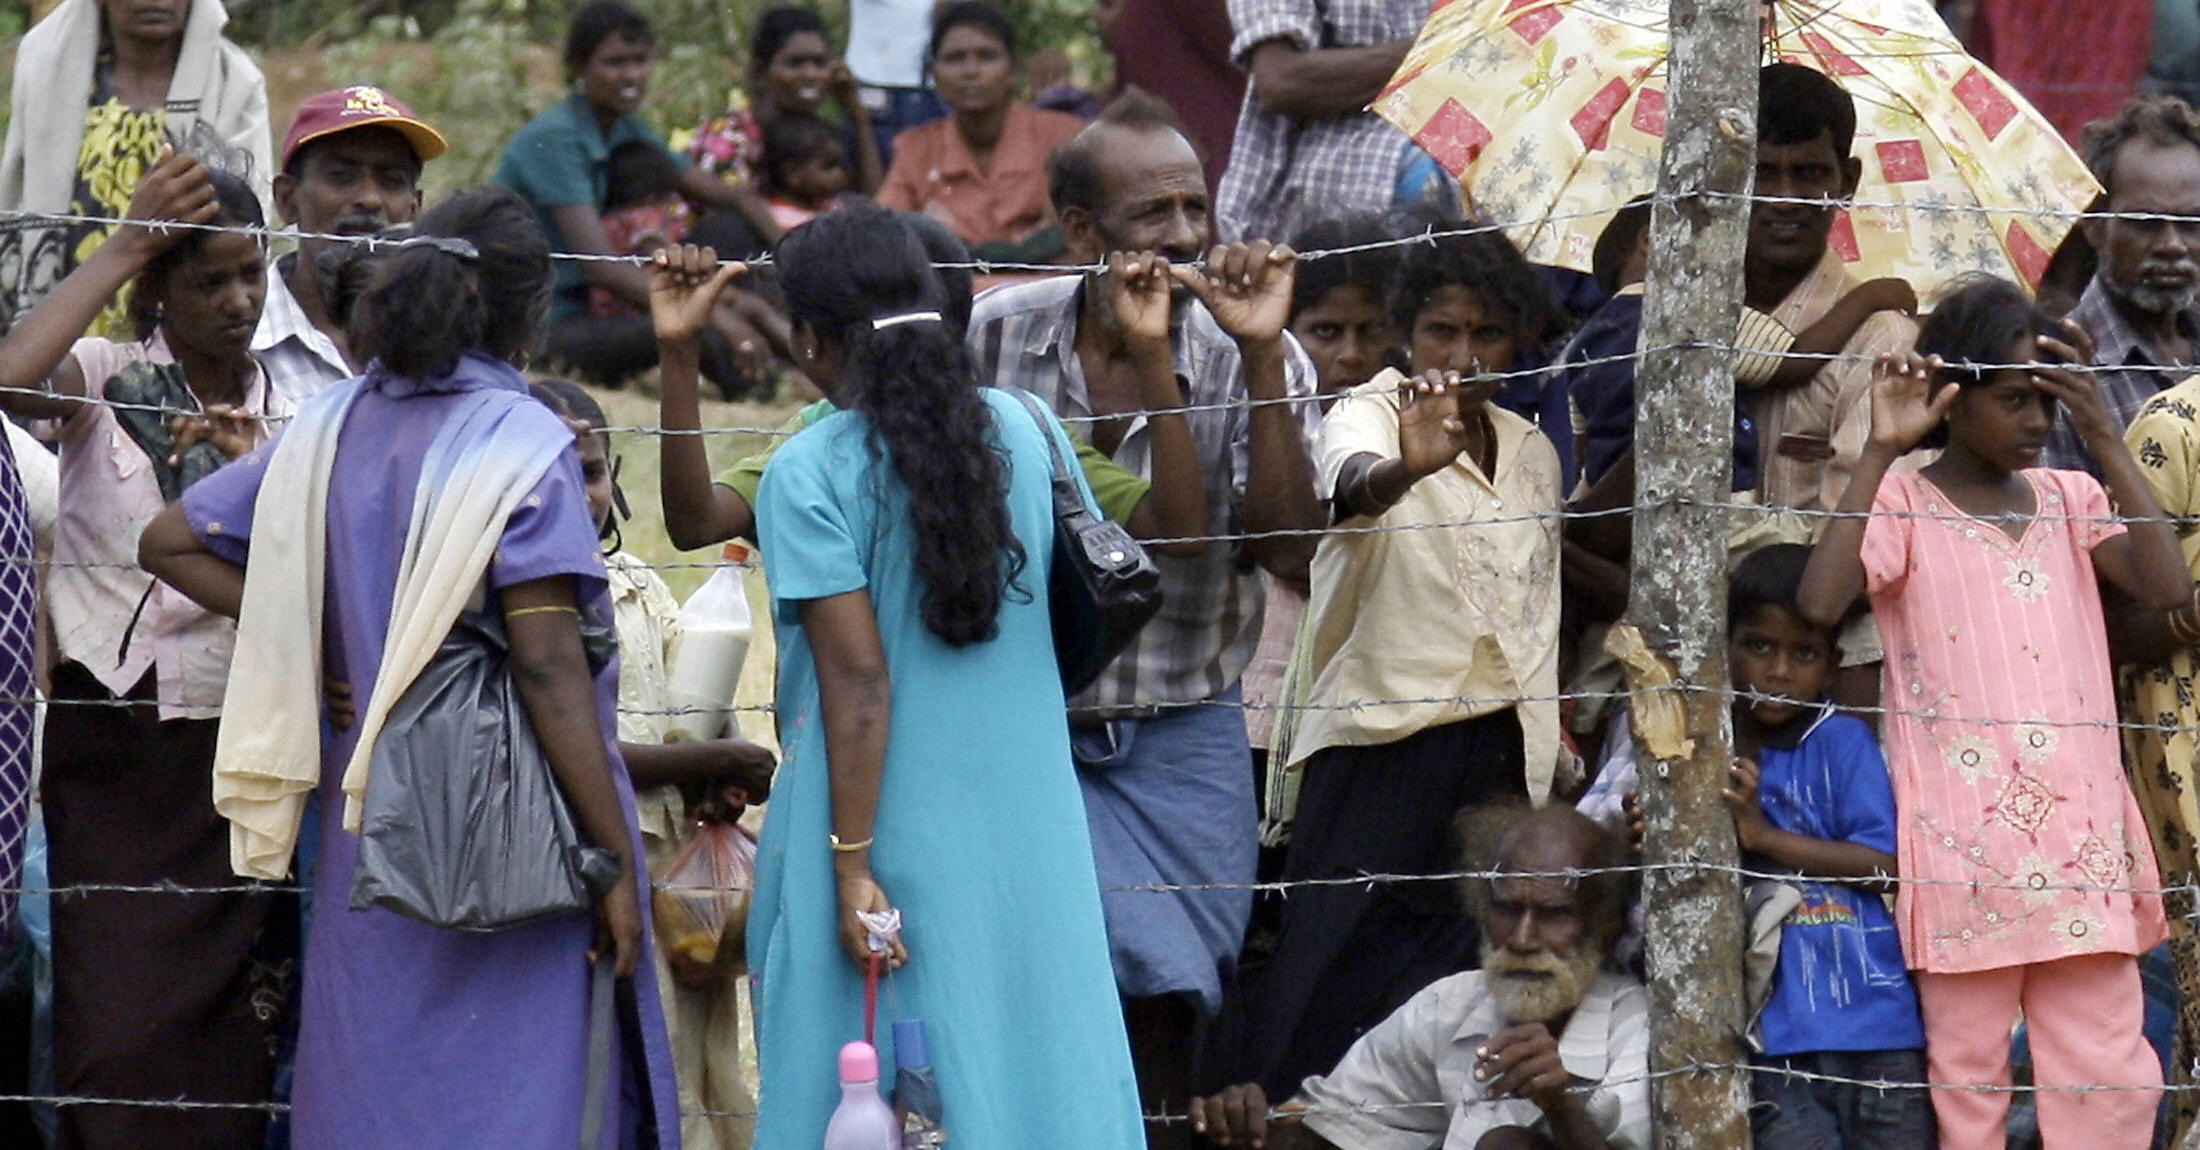 Sri Lanka's Tortuous Path to Reconciliation and Justice